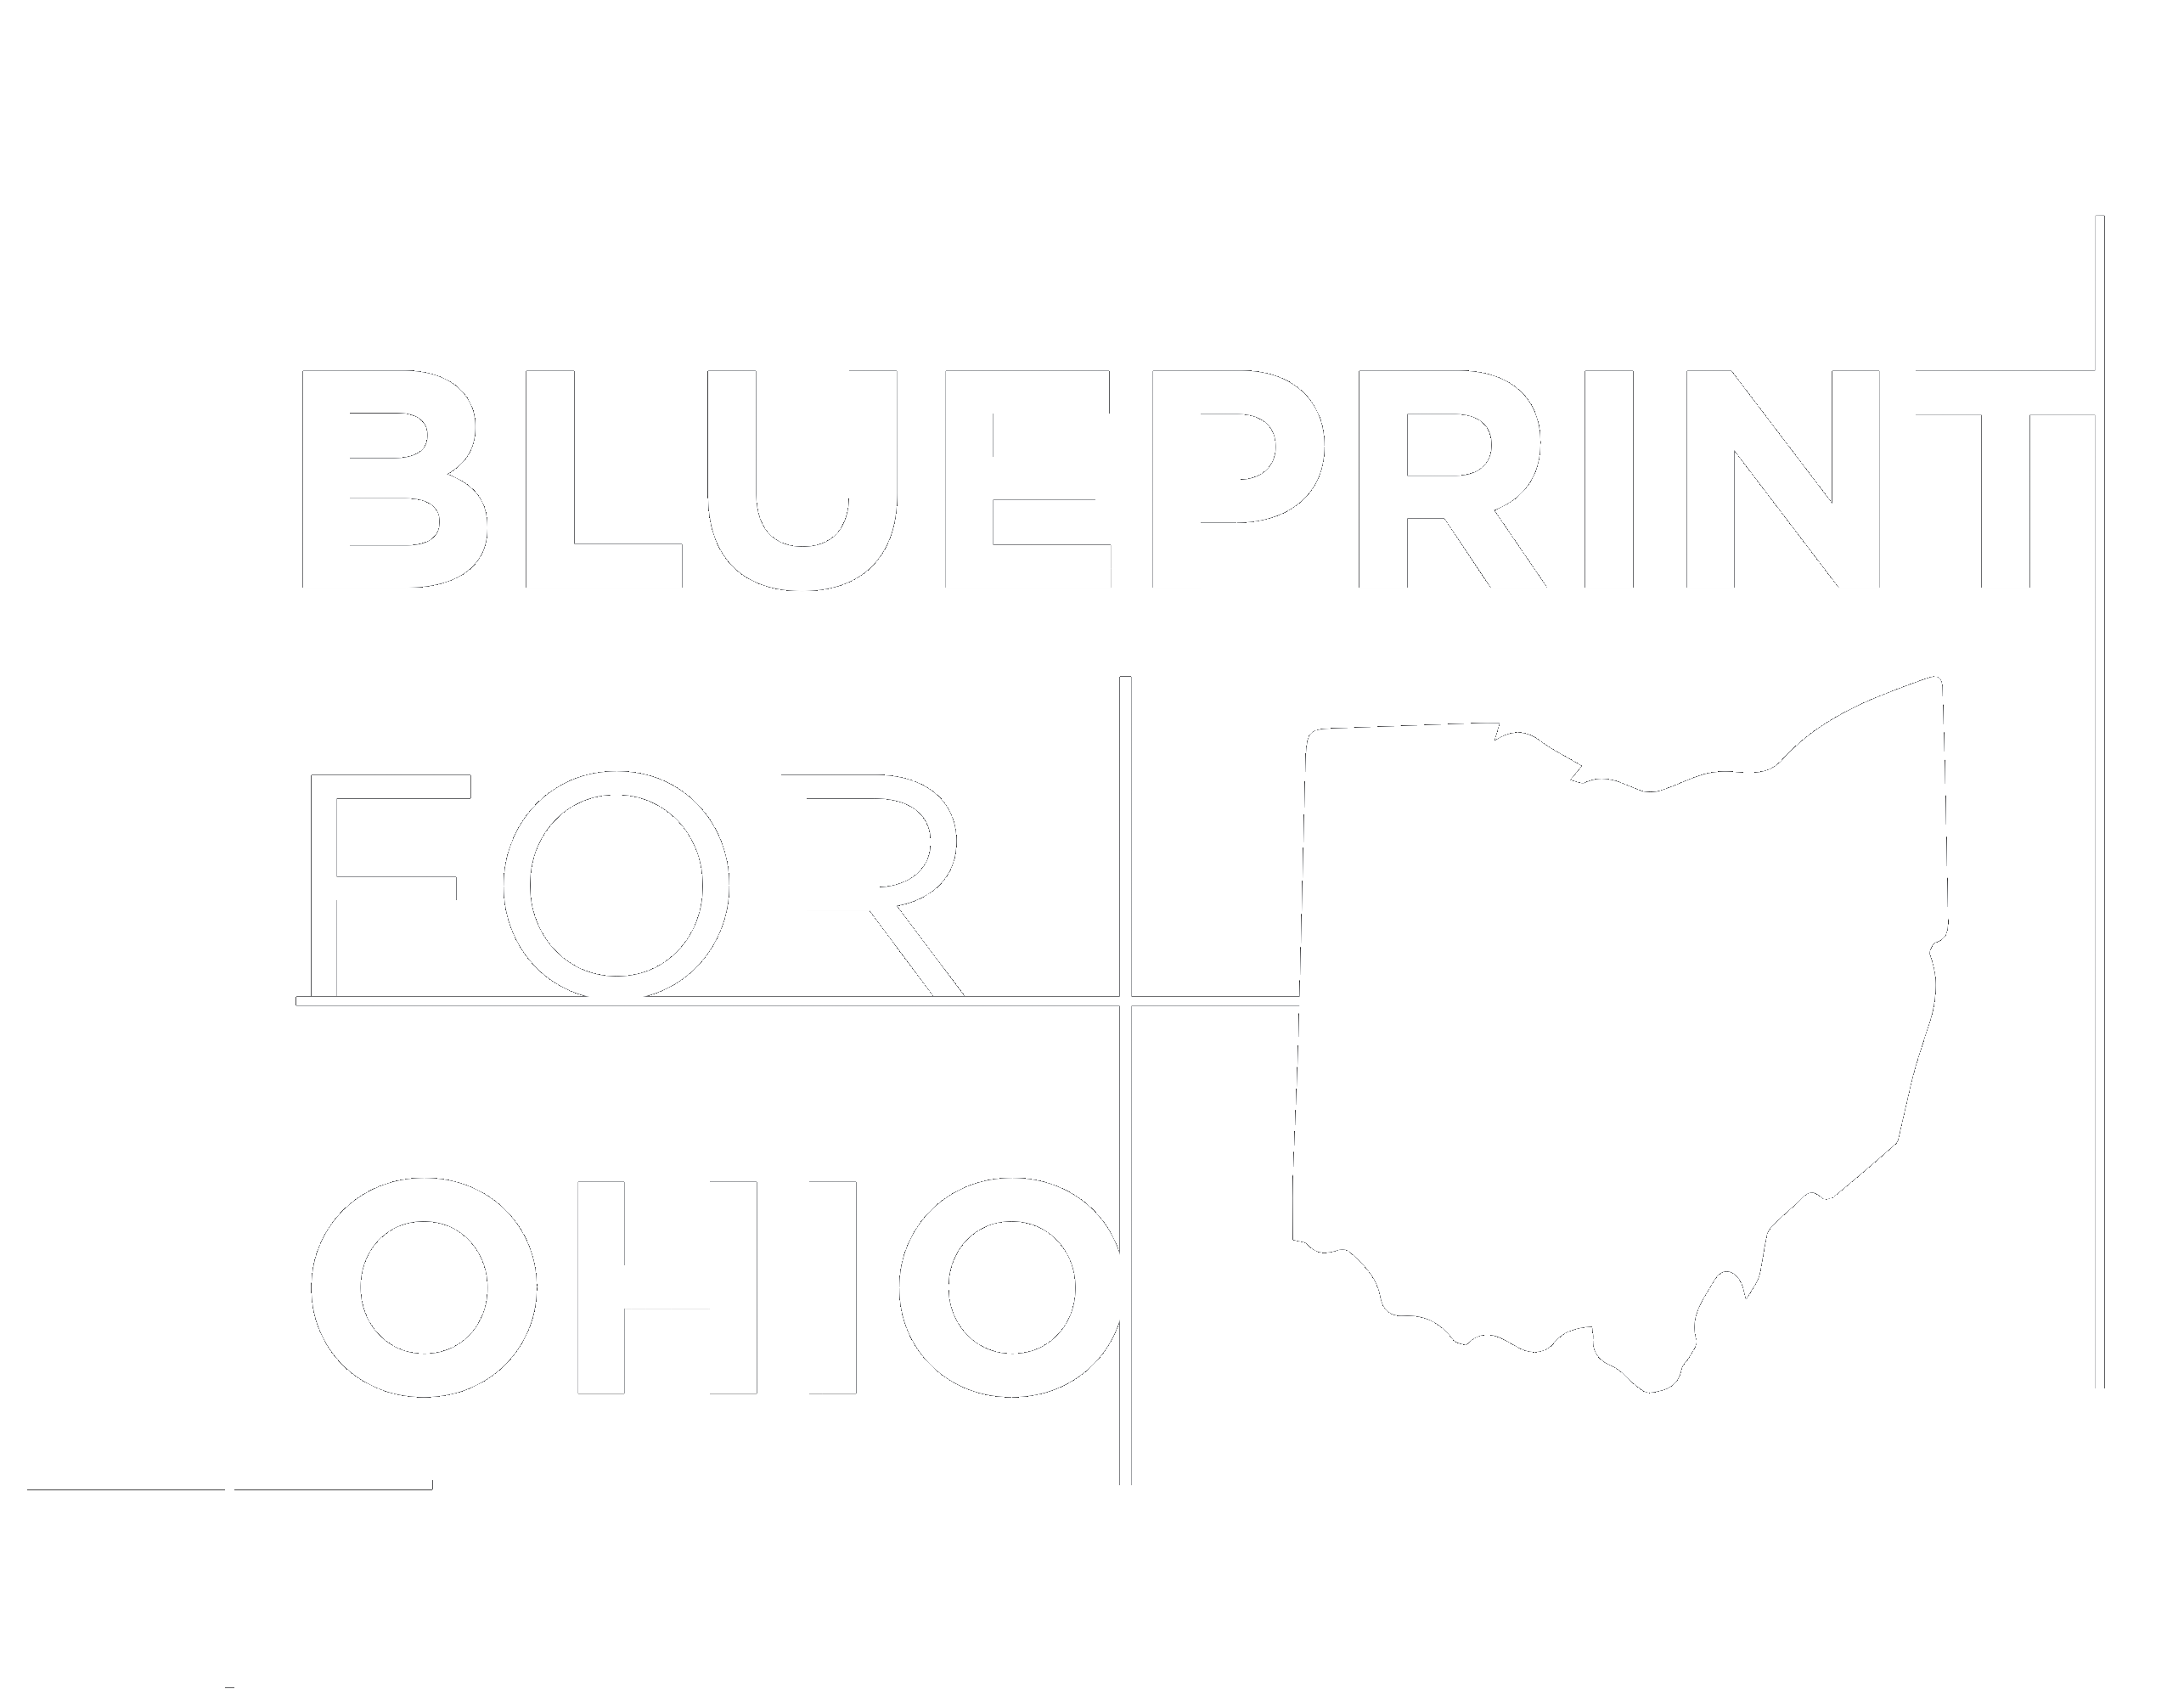 Blueprint for Ohio